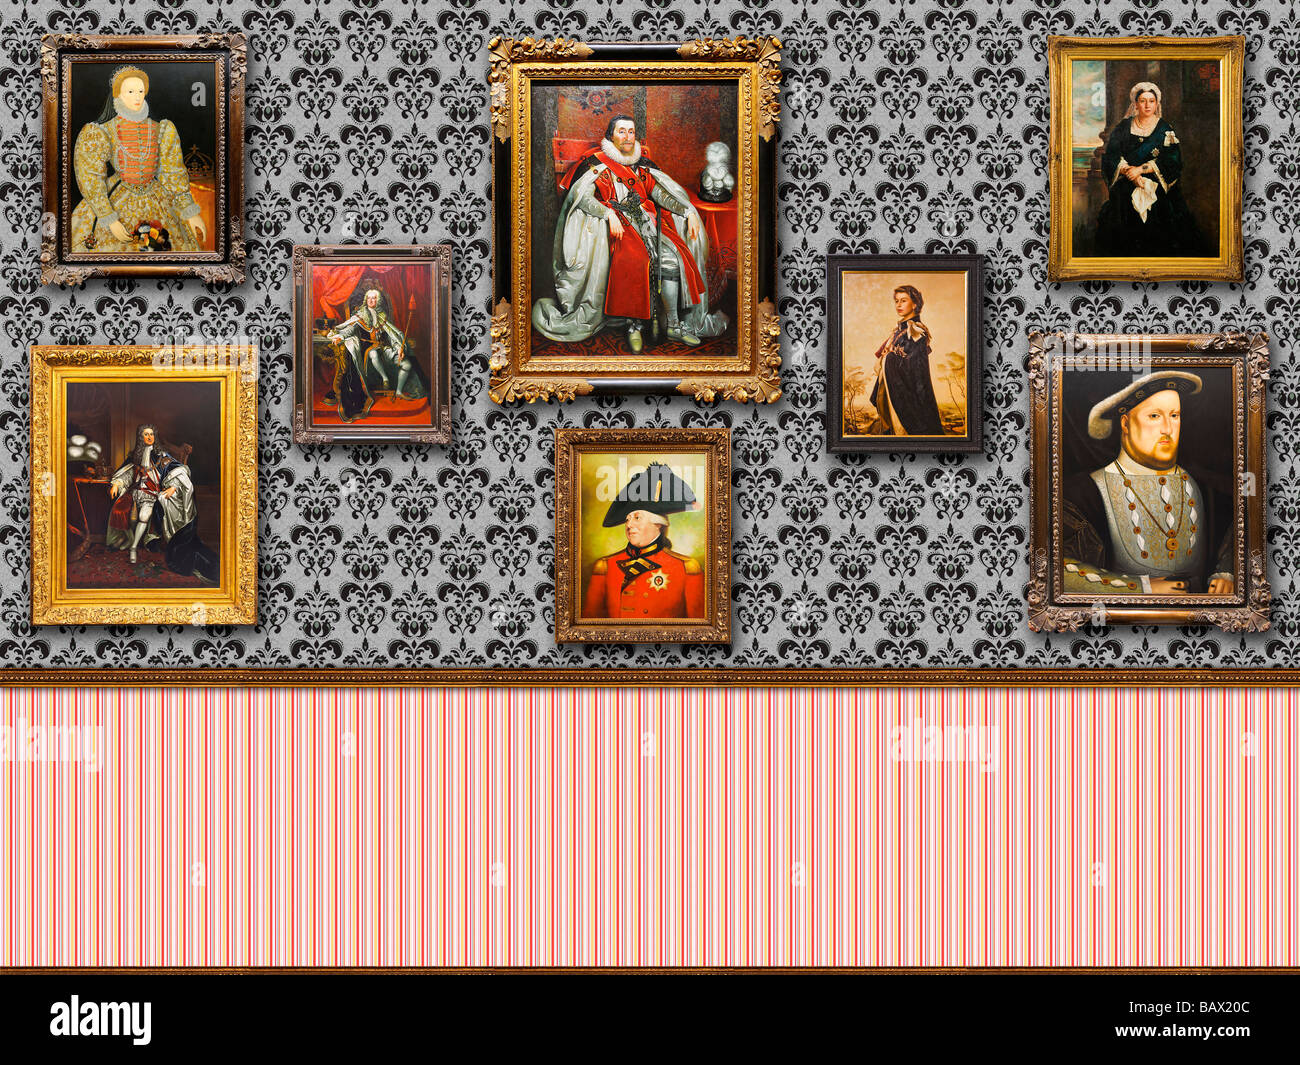 Floral wallpaper wall of British Royalty portraits in ornate frames - Stock Image